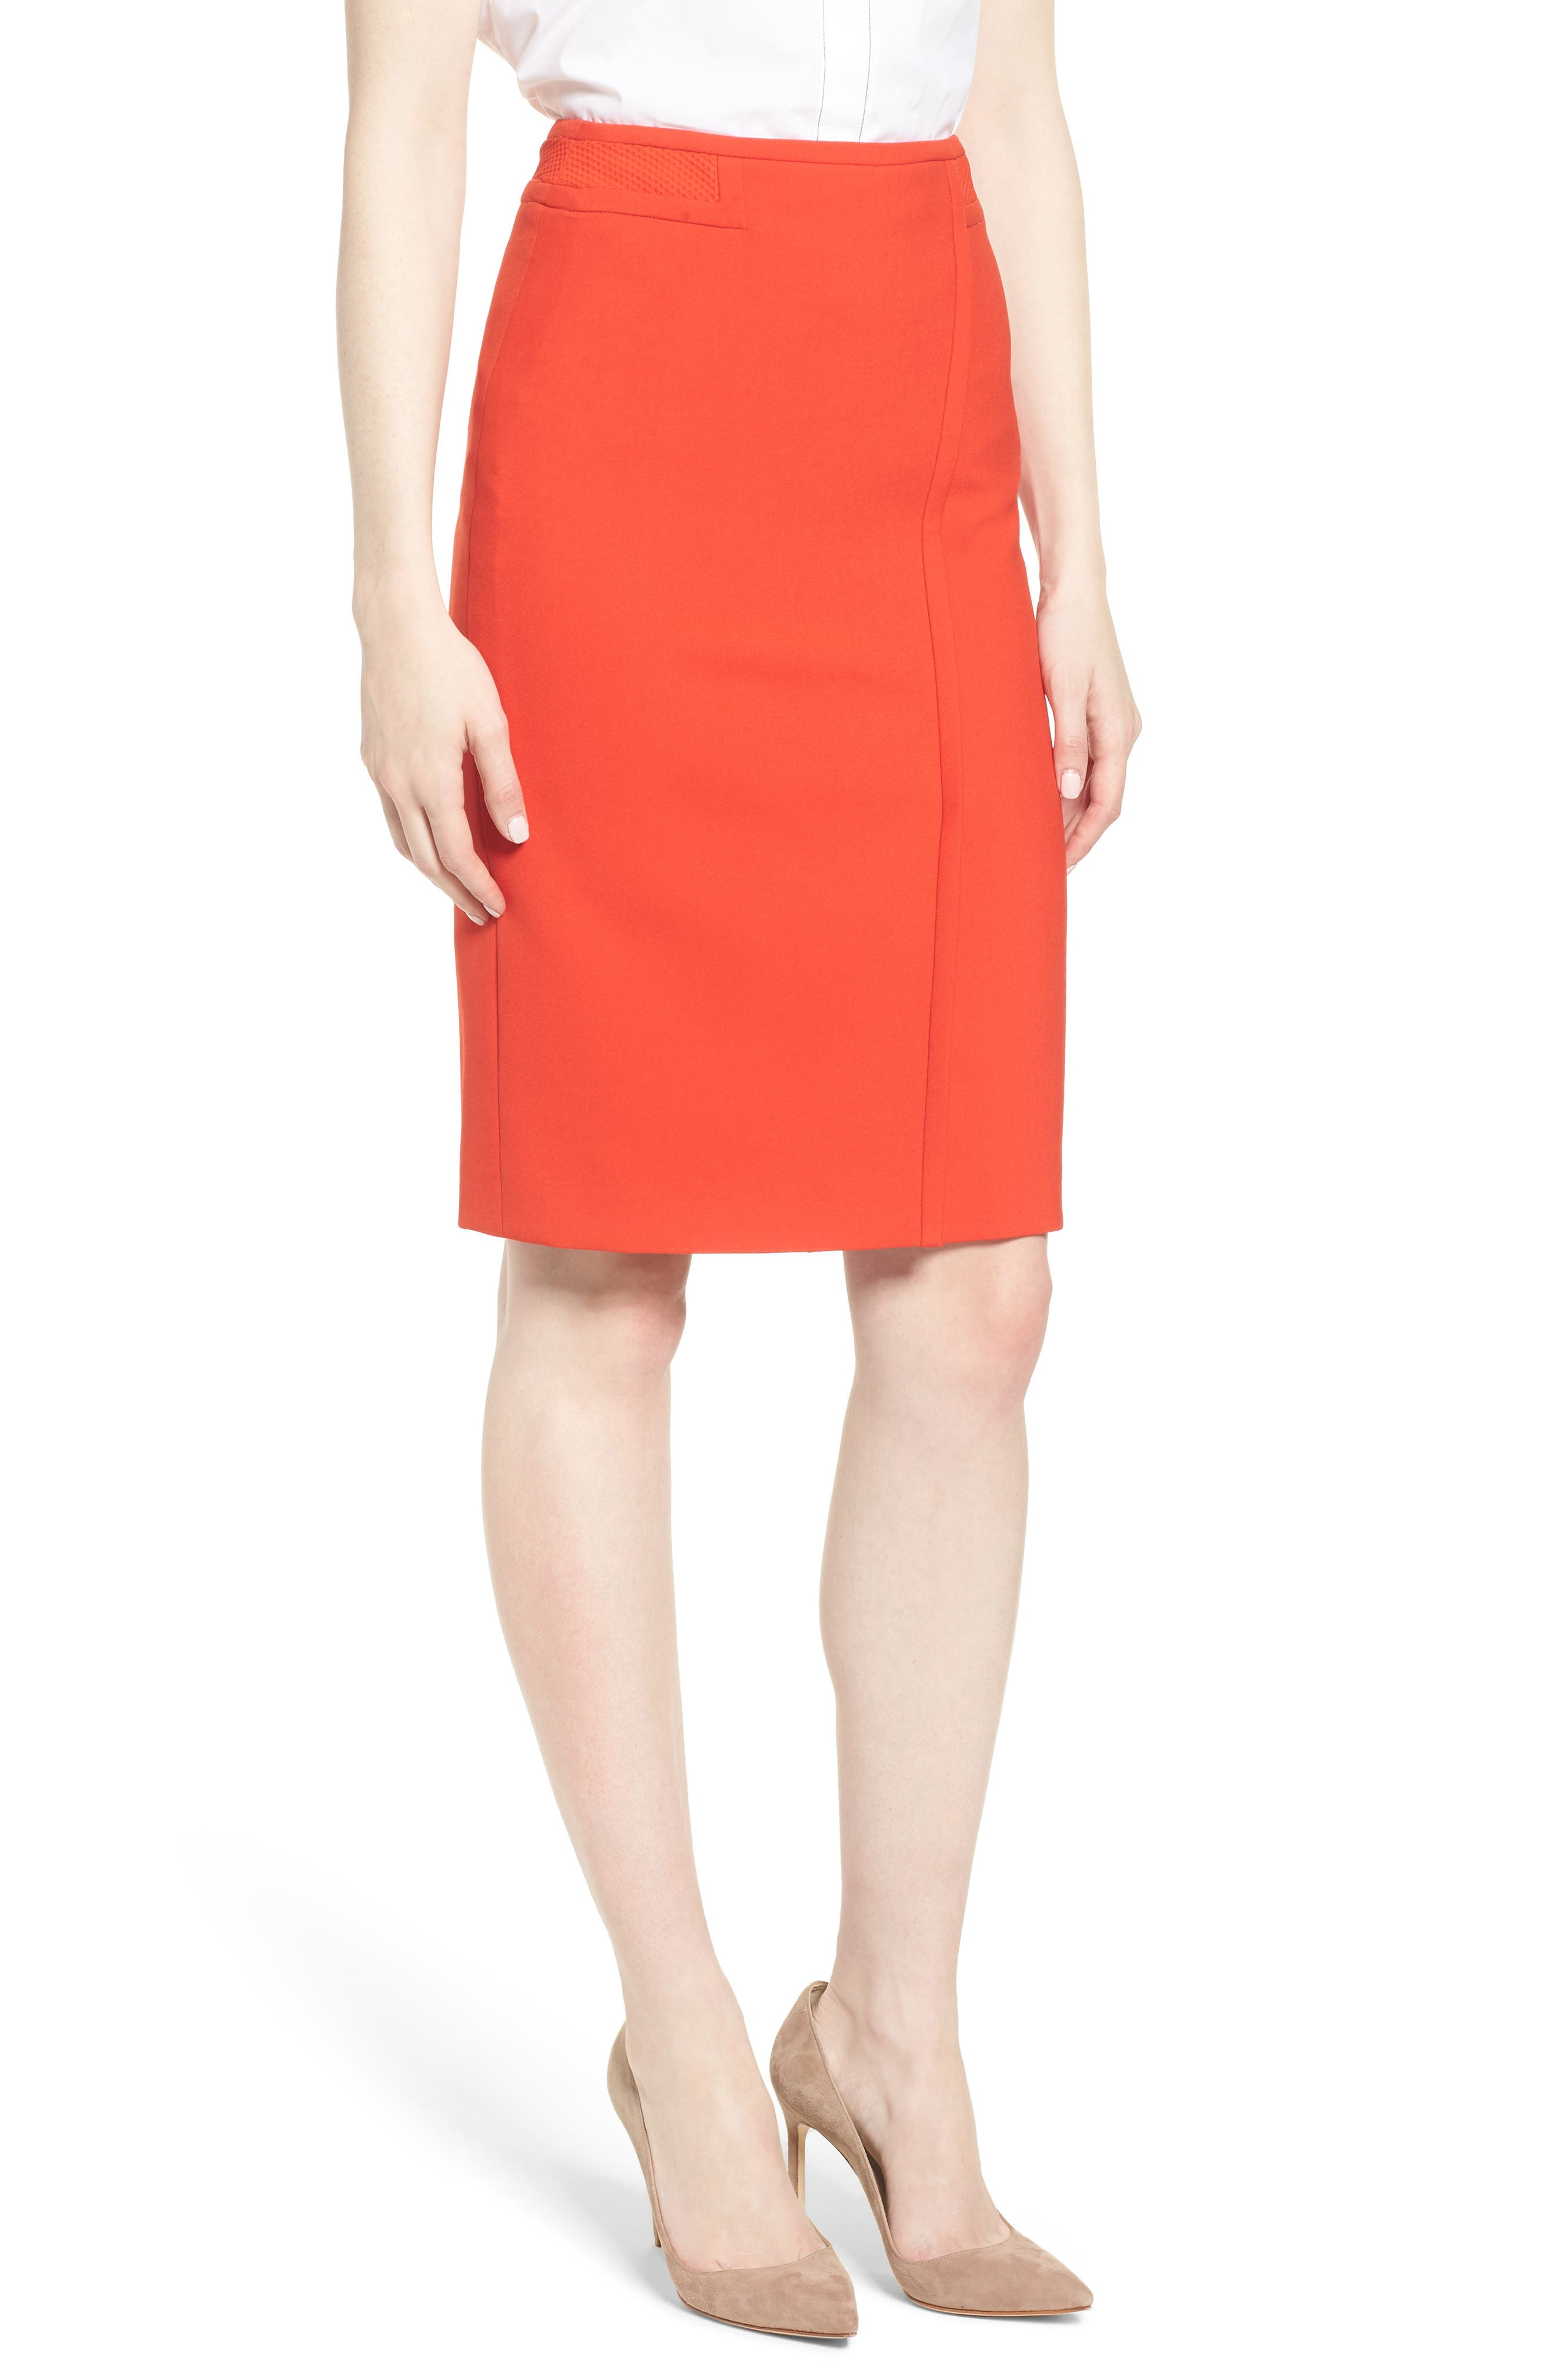 Vadama Ponte Pencil Skirt,                         Main,                         color, Sunset Orange